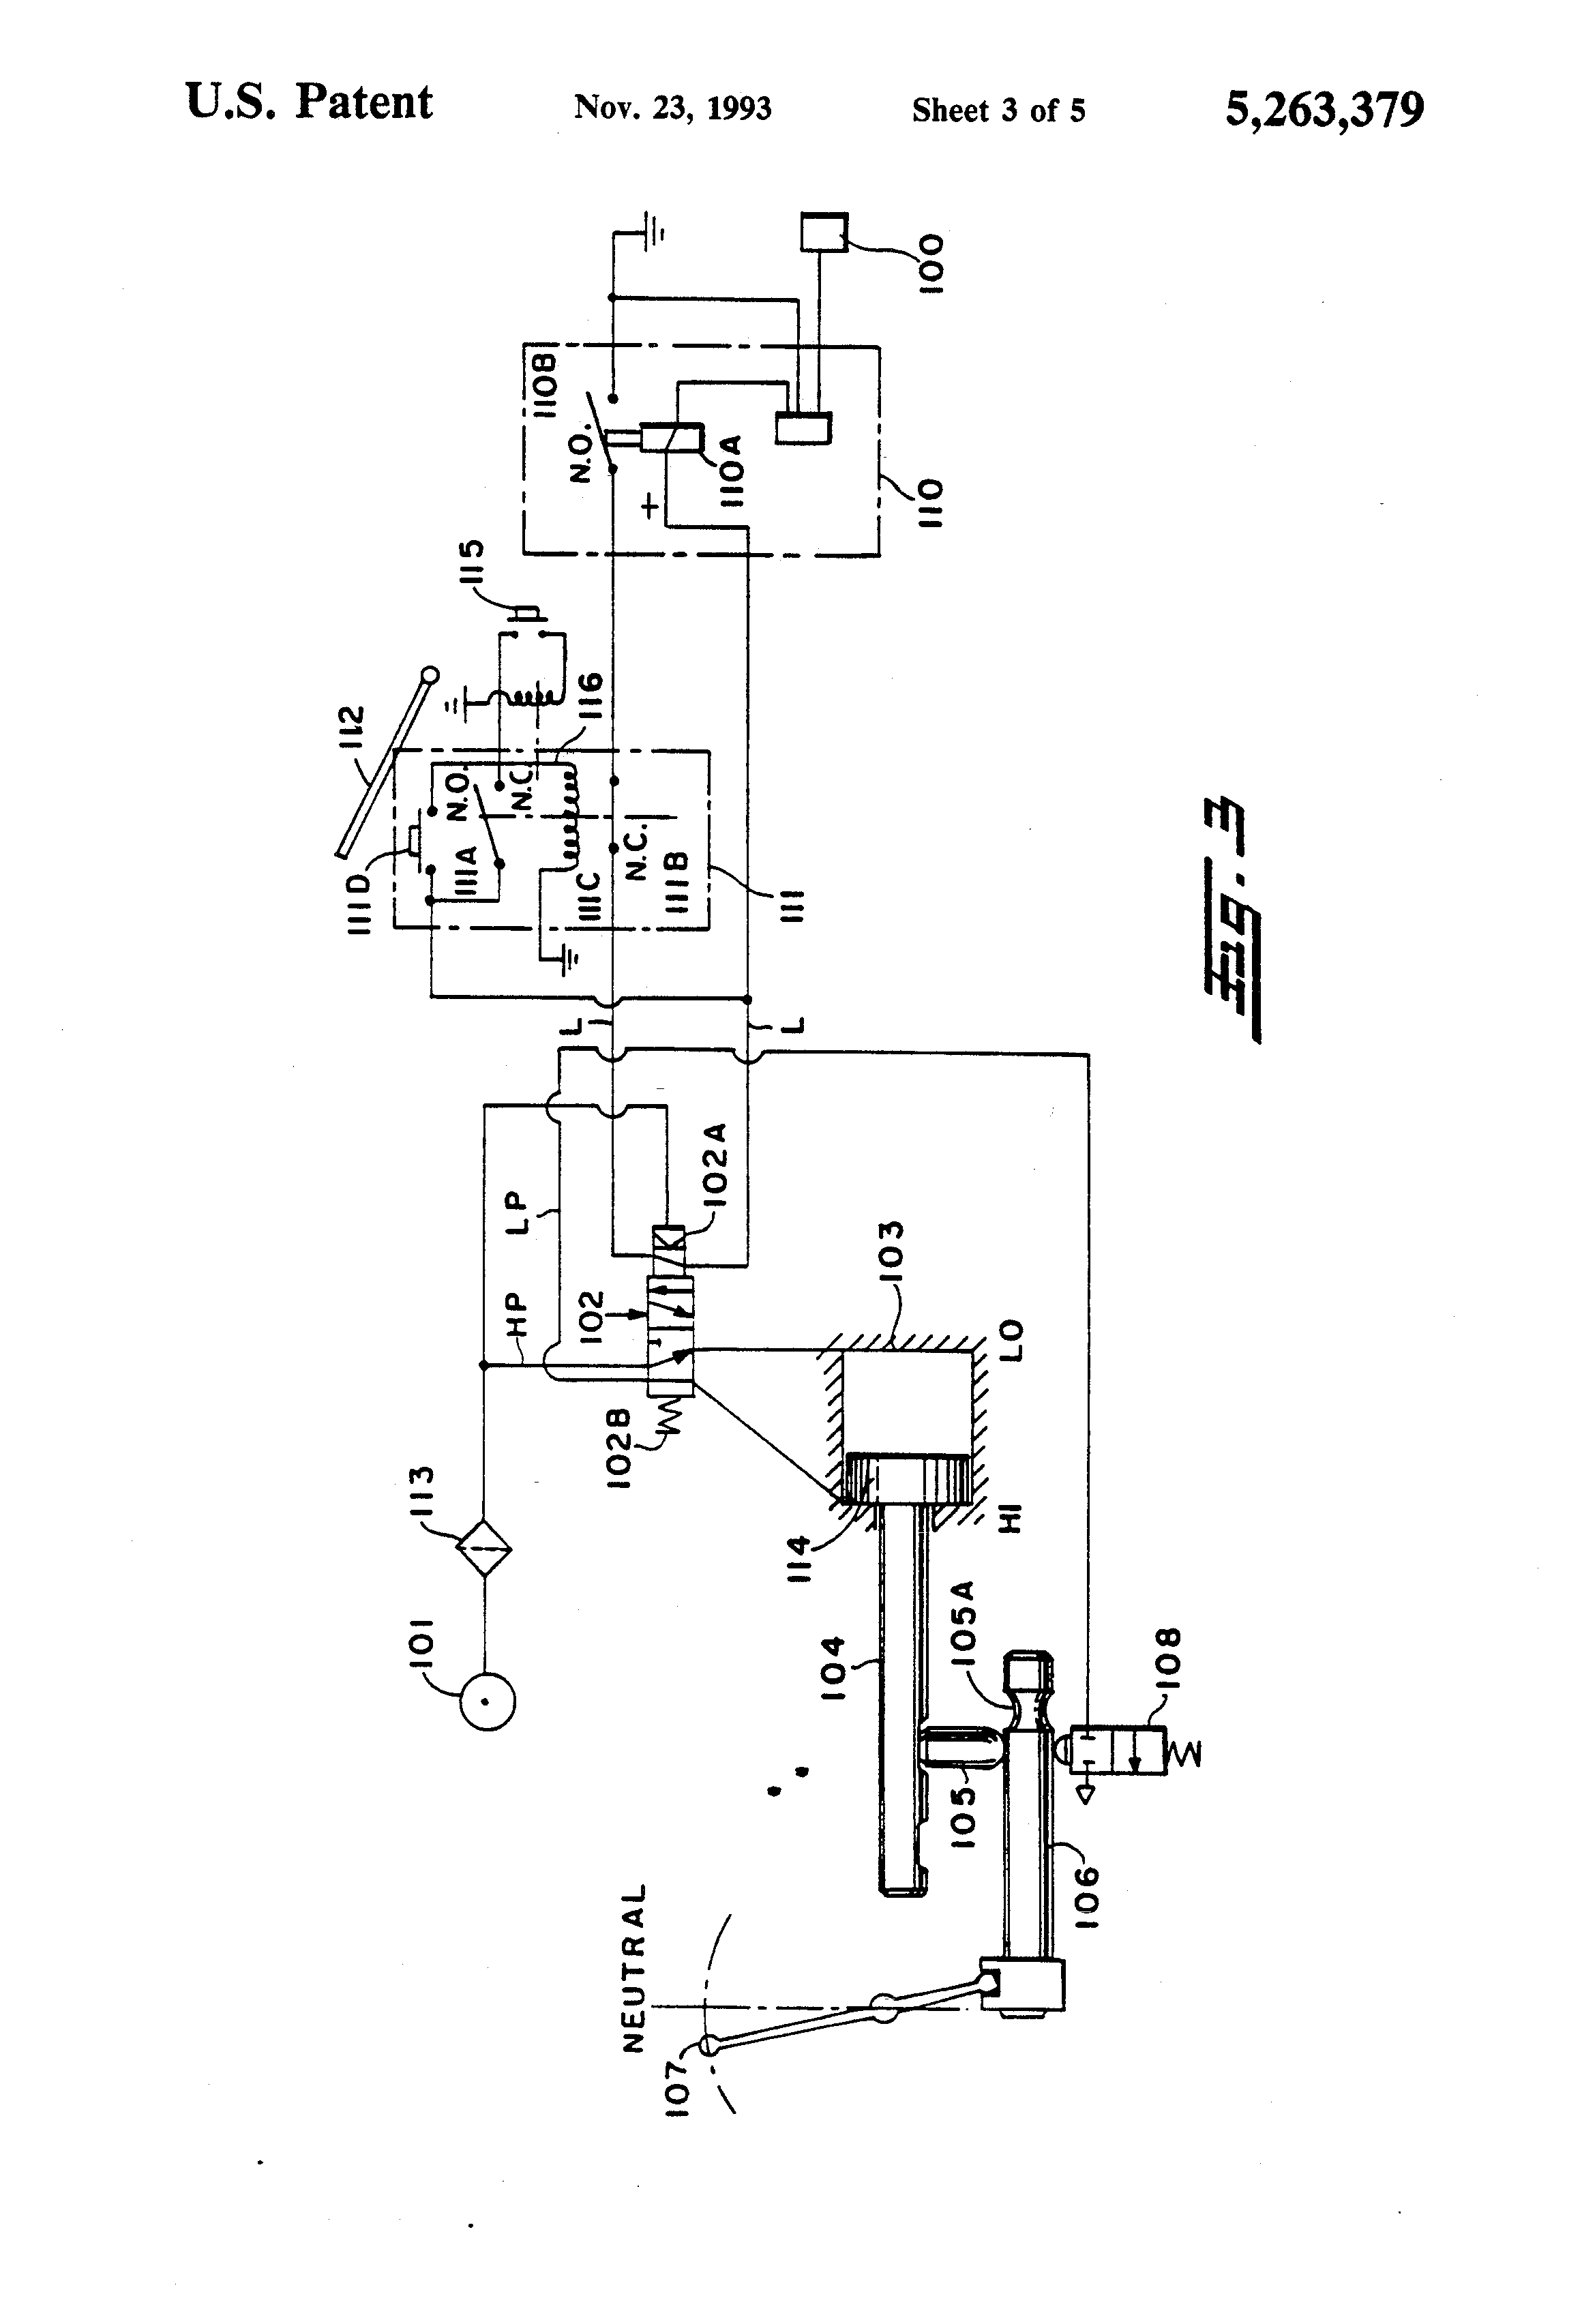 air shift 13 speed diagram motion sensor light wiring eaton fuller 10 sd transmission parts dodge